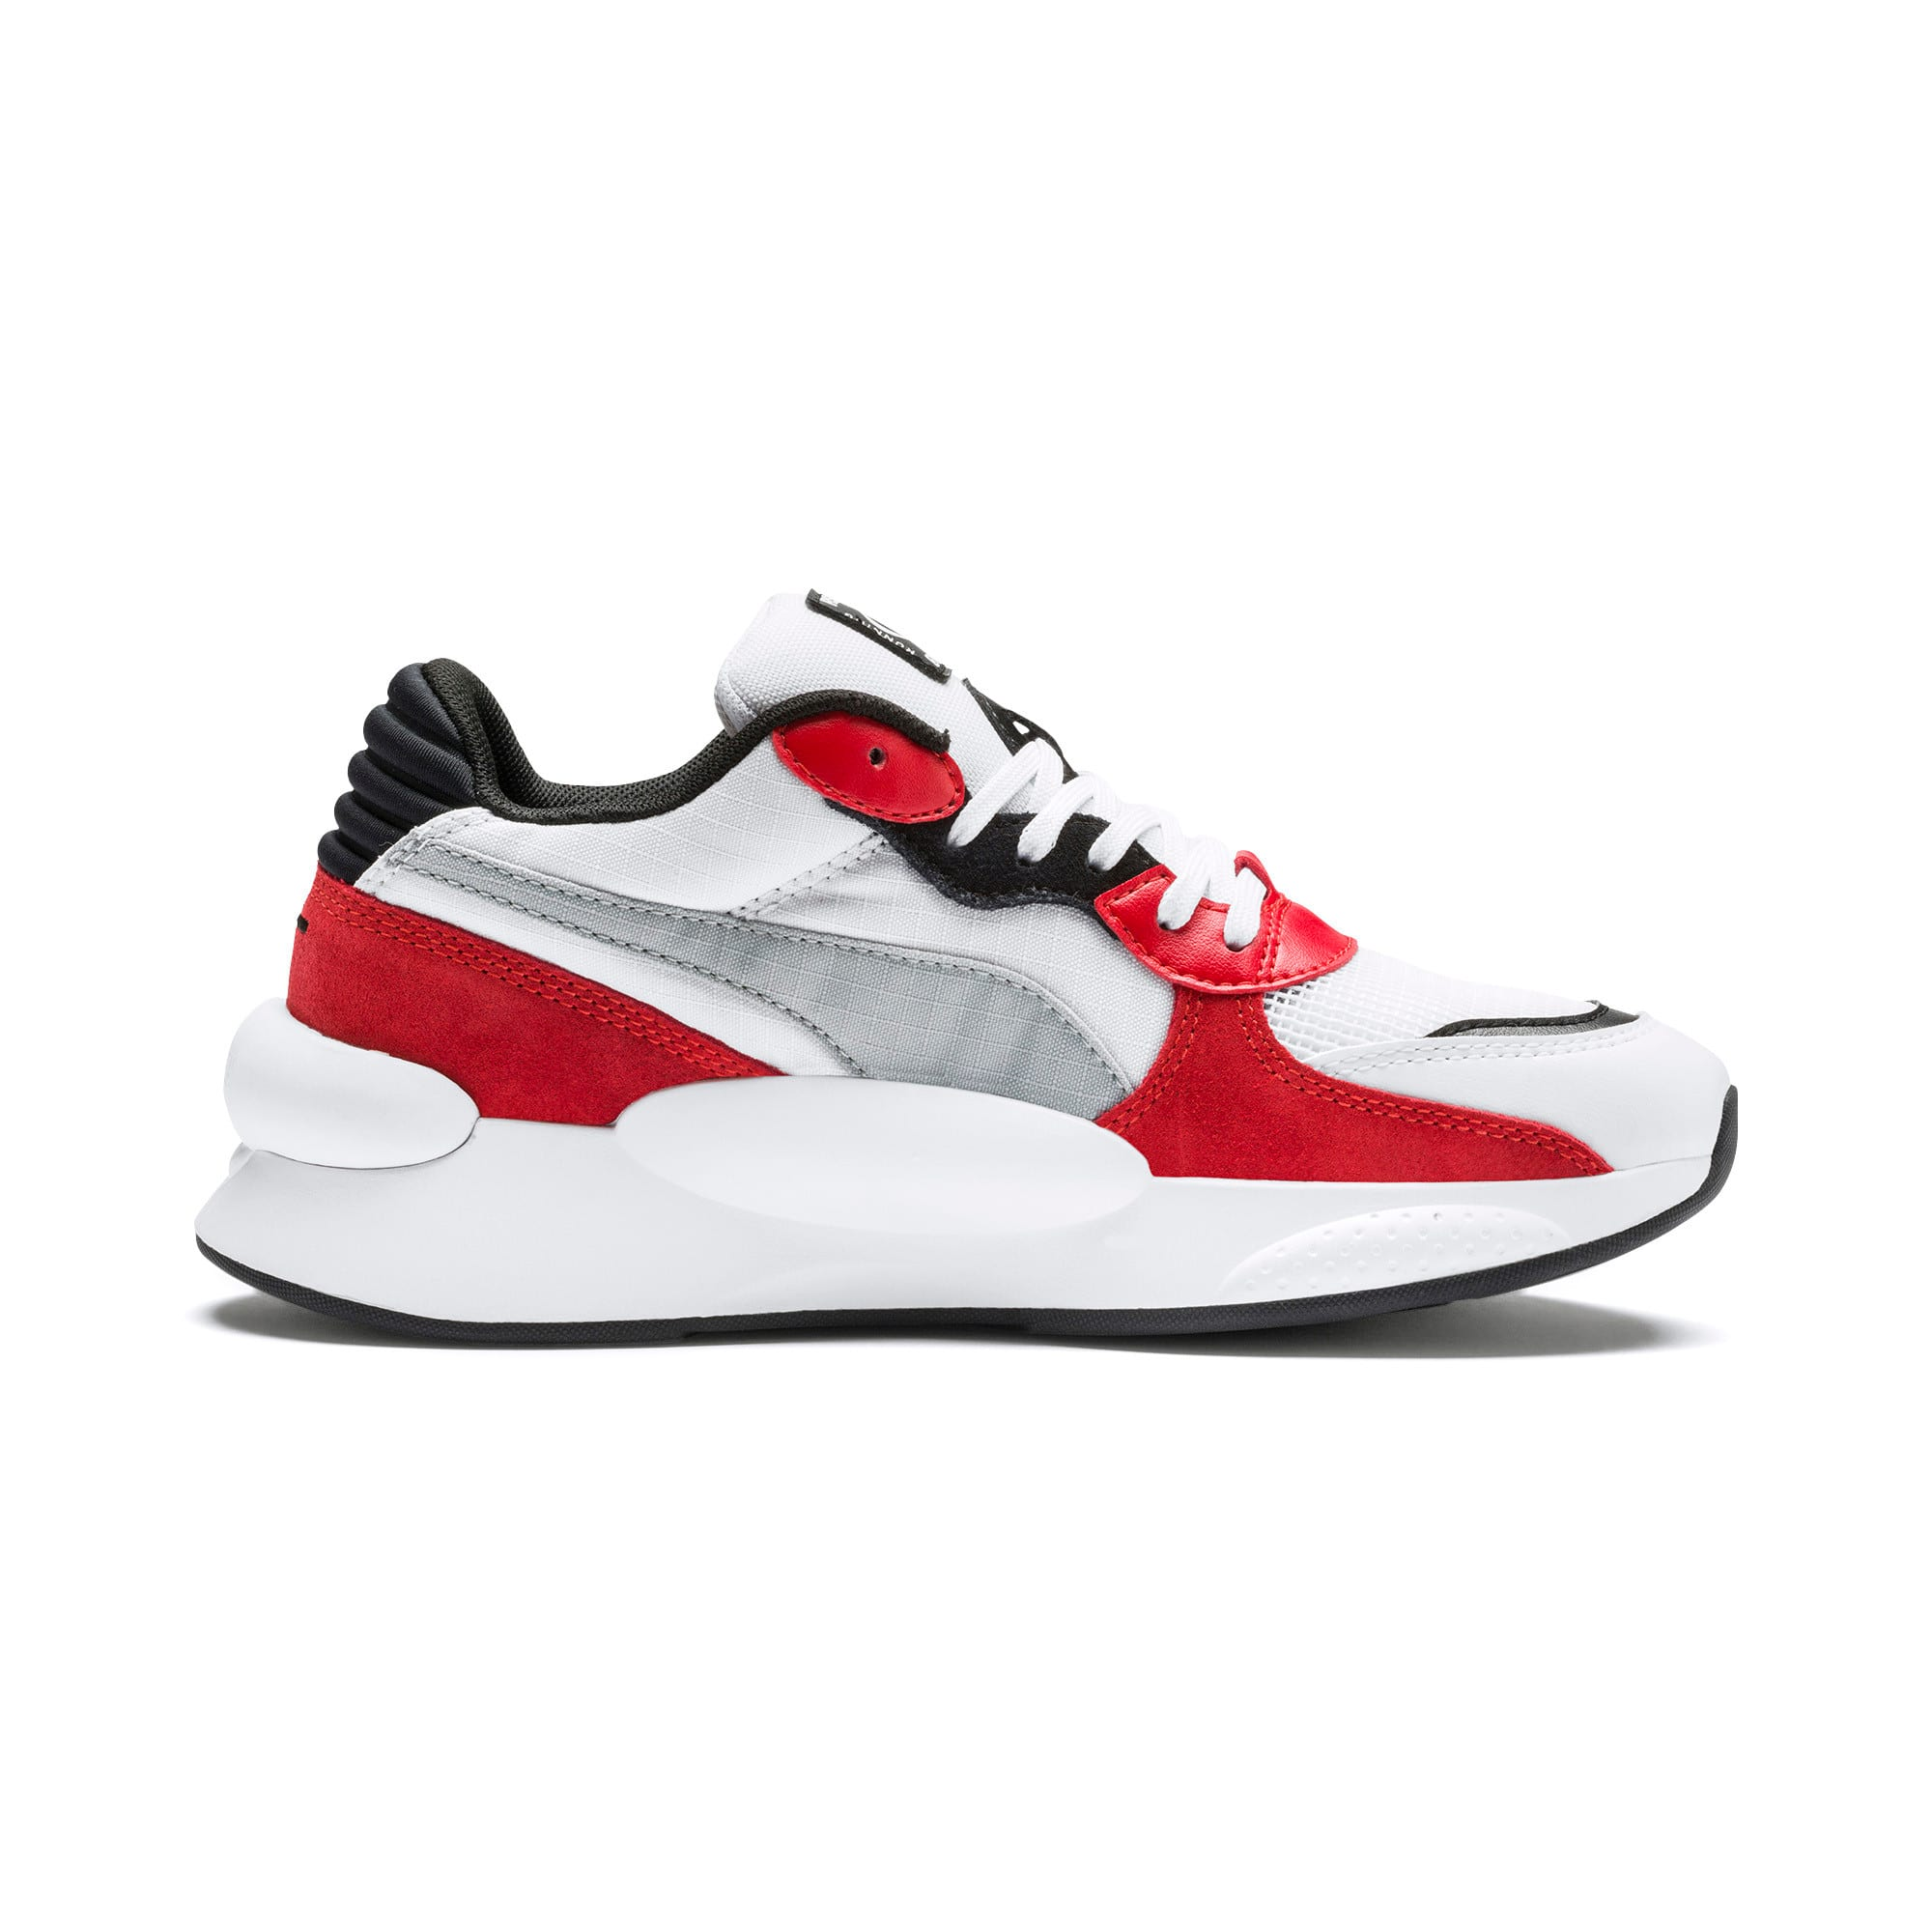 Thumbnail 5 of RS 9.8 Space Youth Trainers, Puma White-High Risk Red, medium